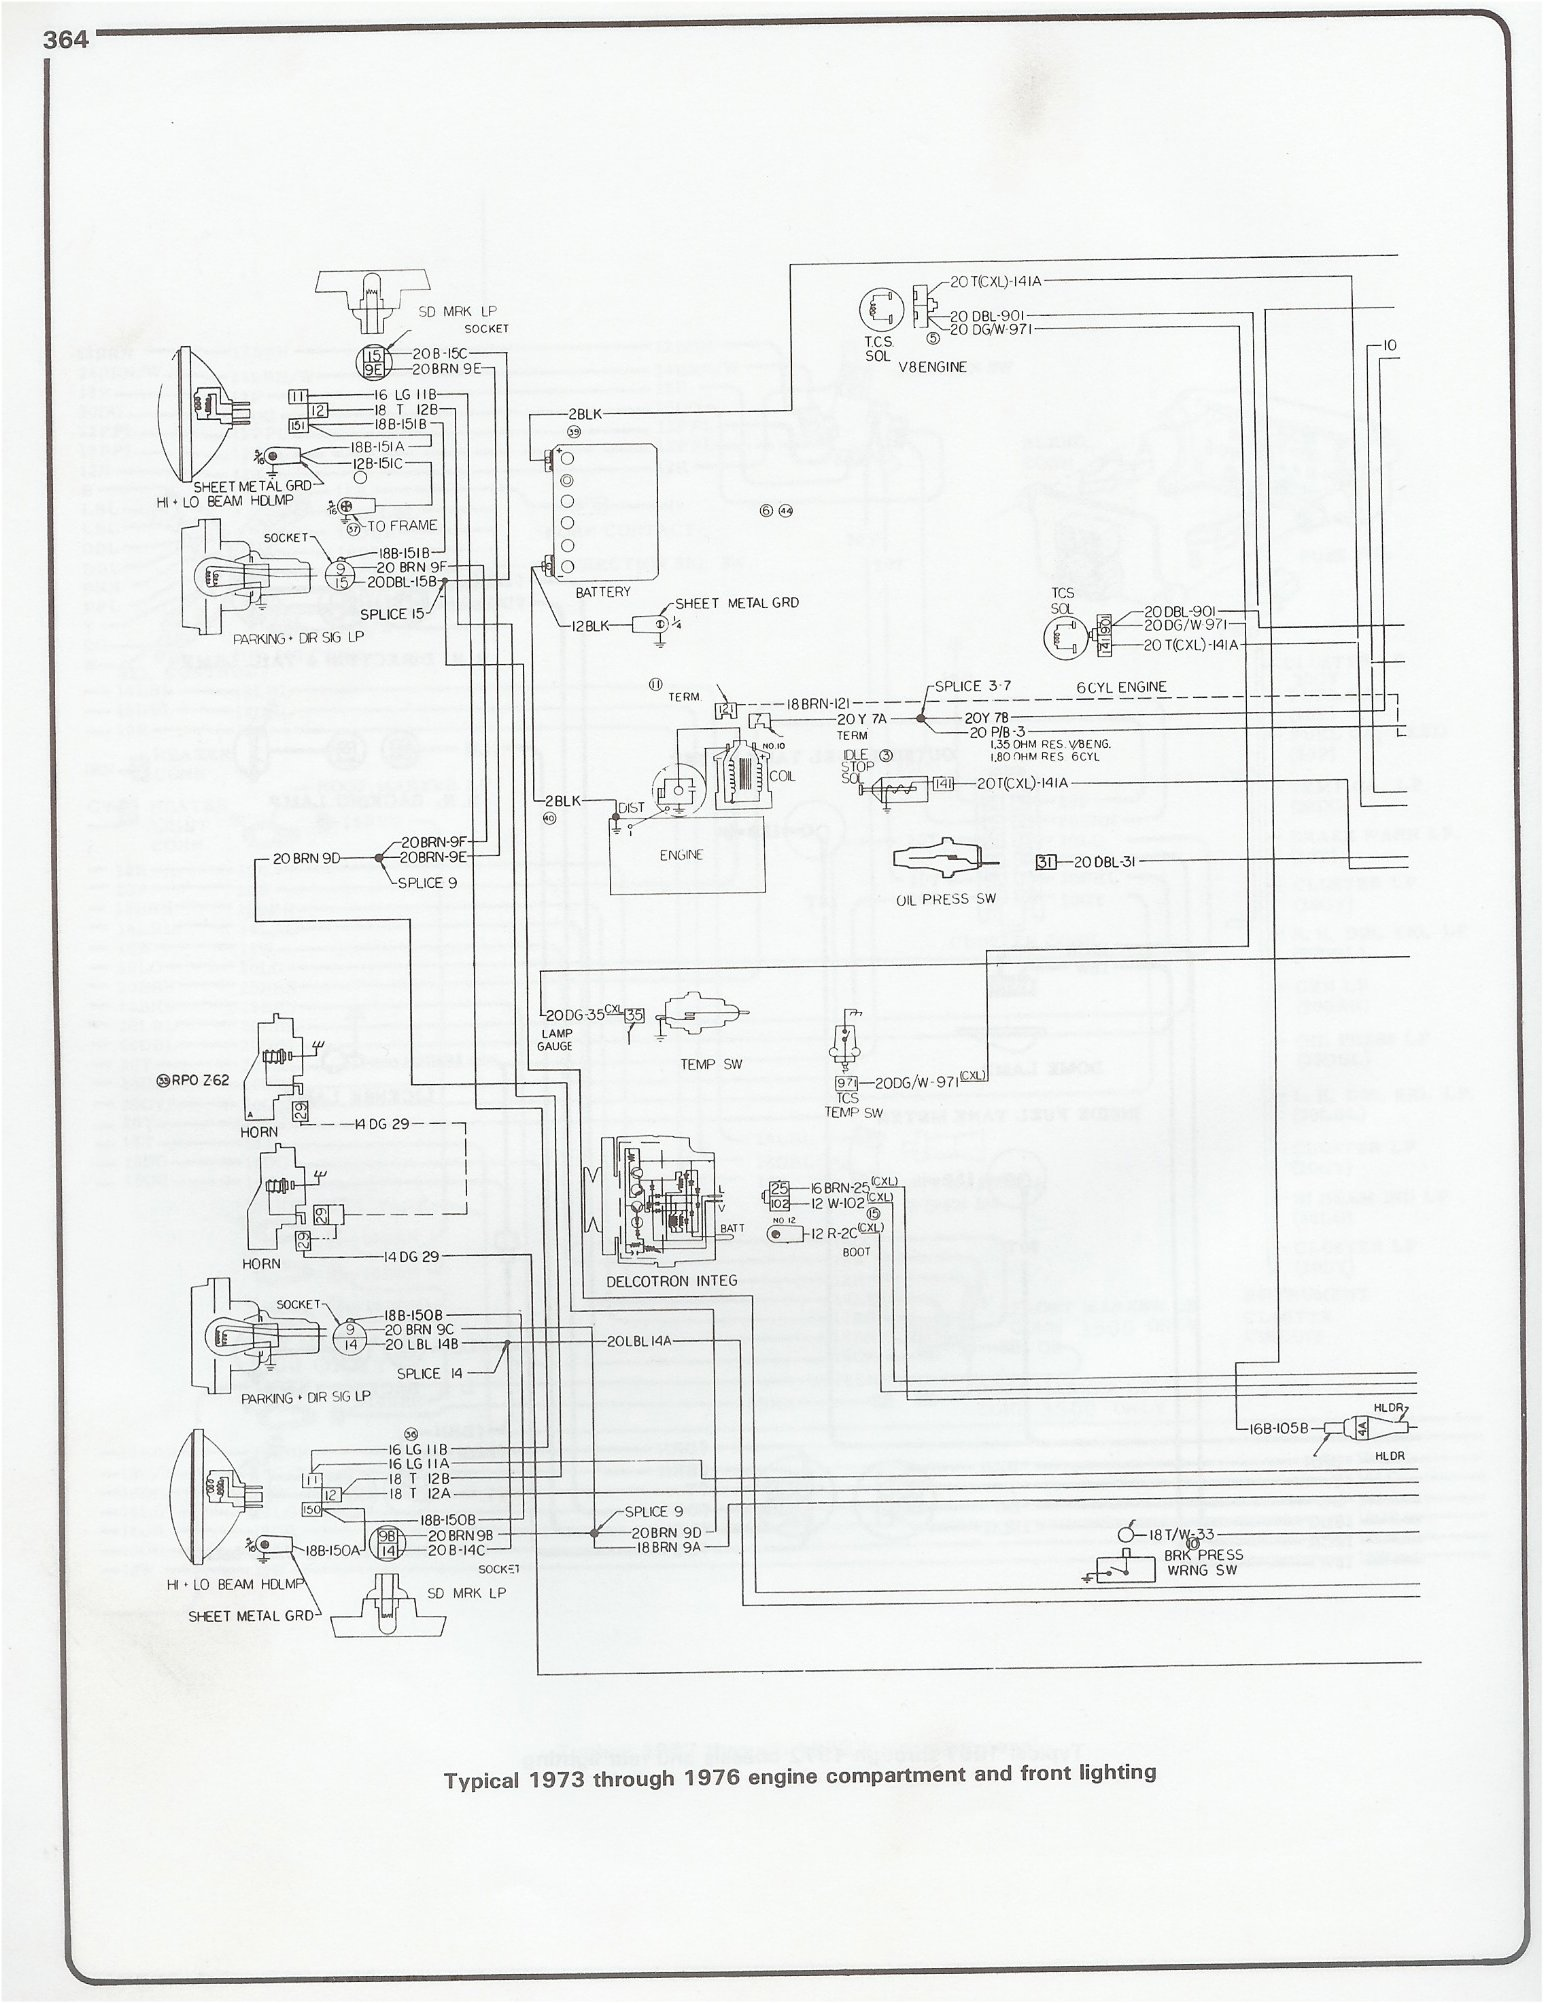 73 76_eng_frt_light complete 73 87 wiring diagrams  at mifinder.co